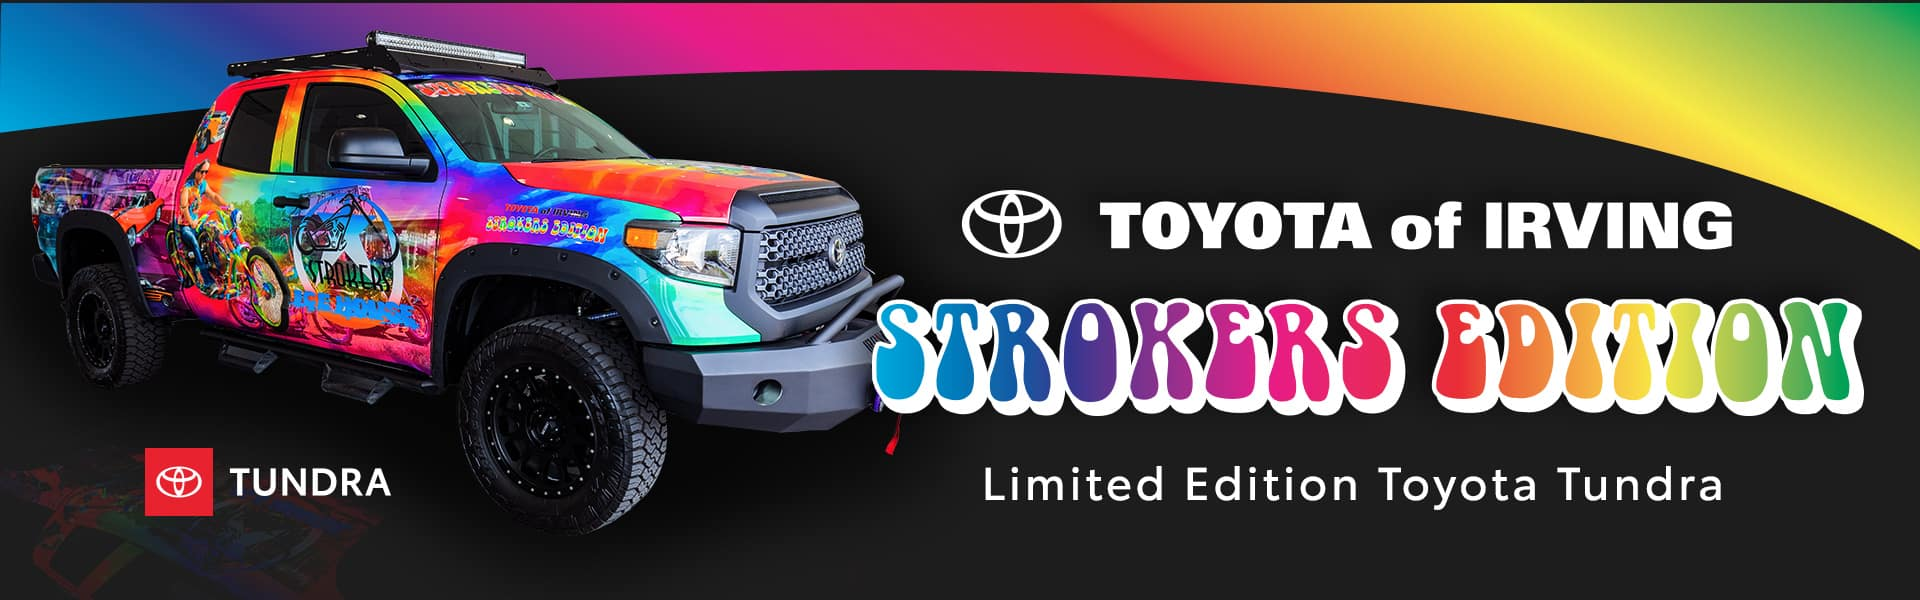 Limited Strokers Edition Toyota Tundra